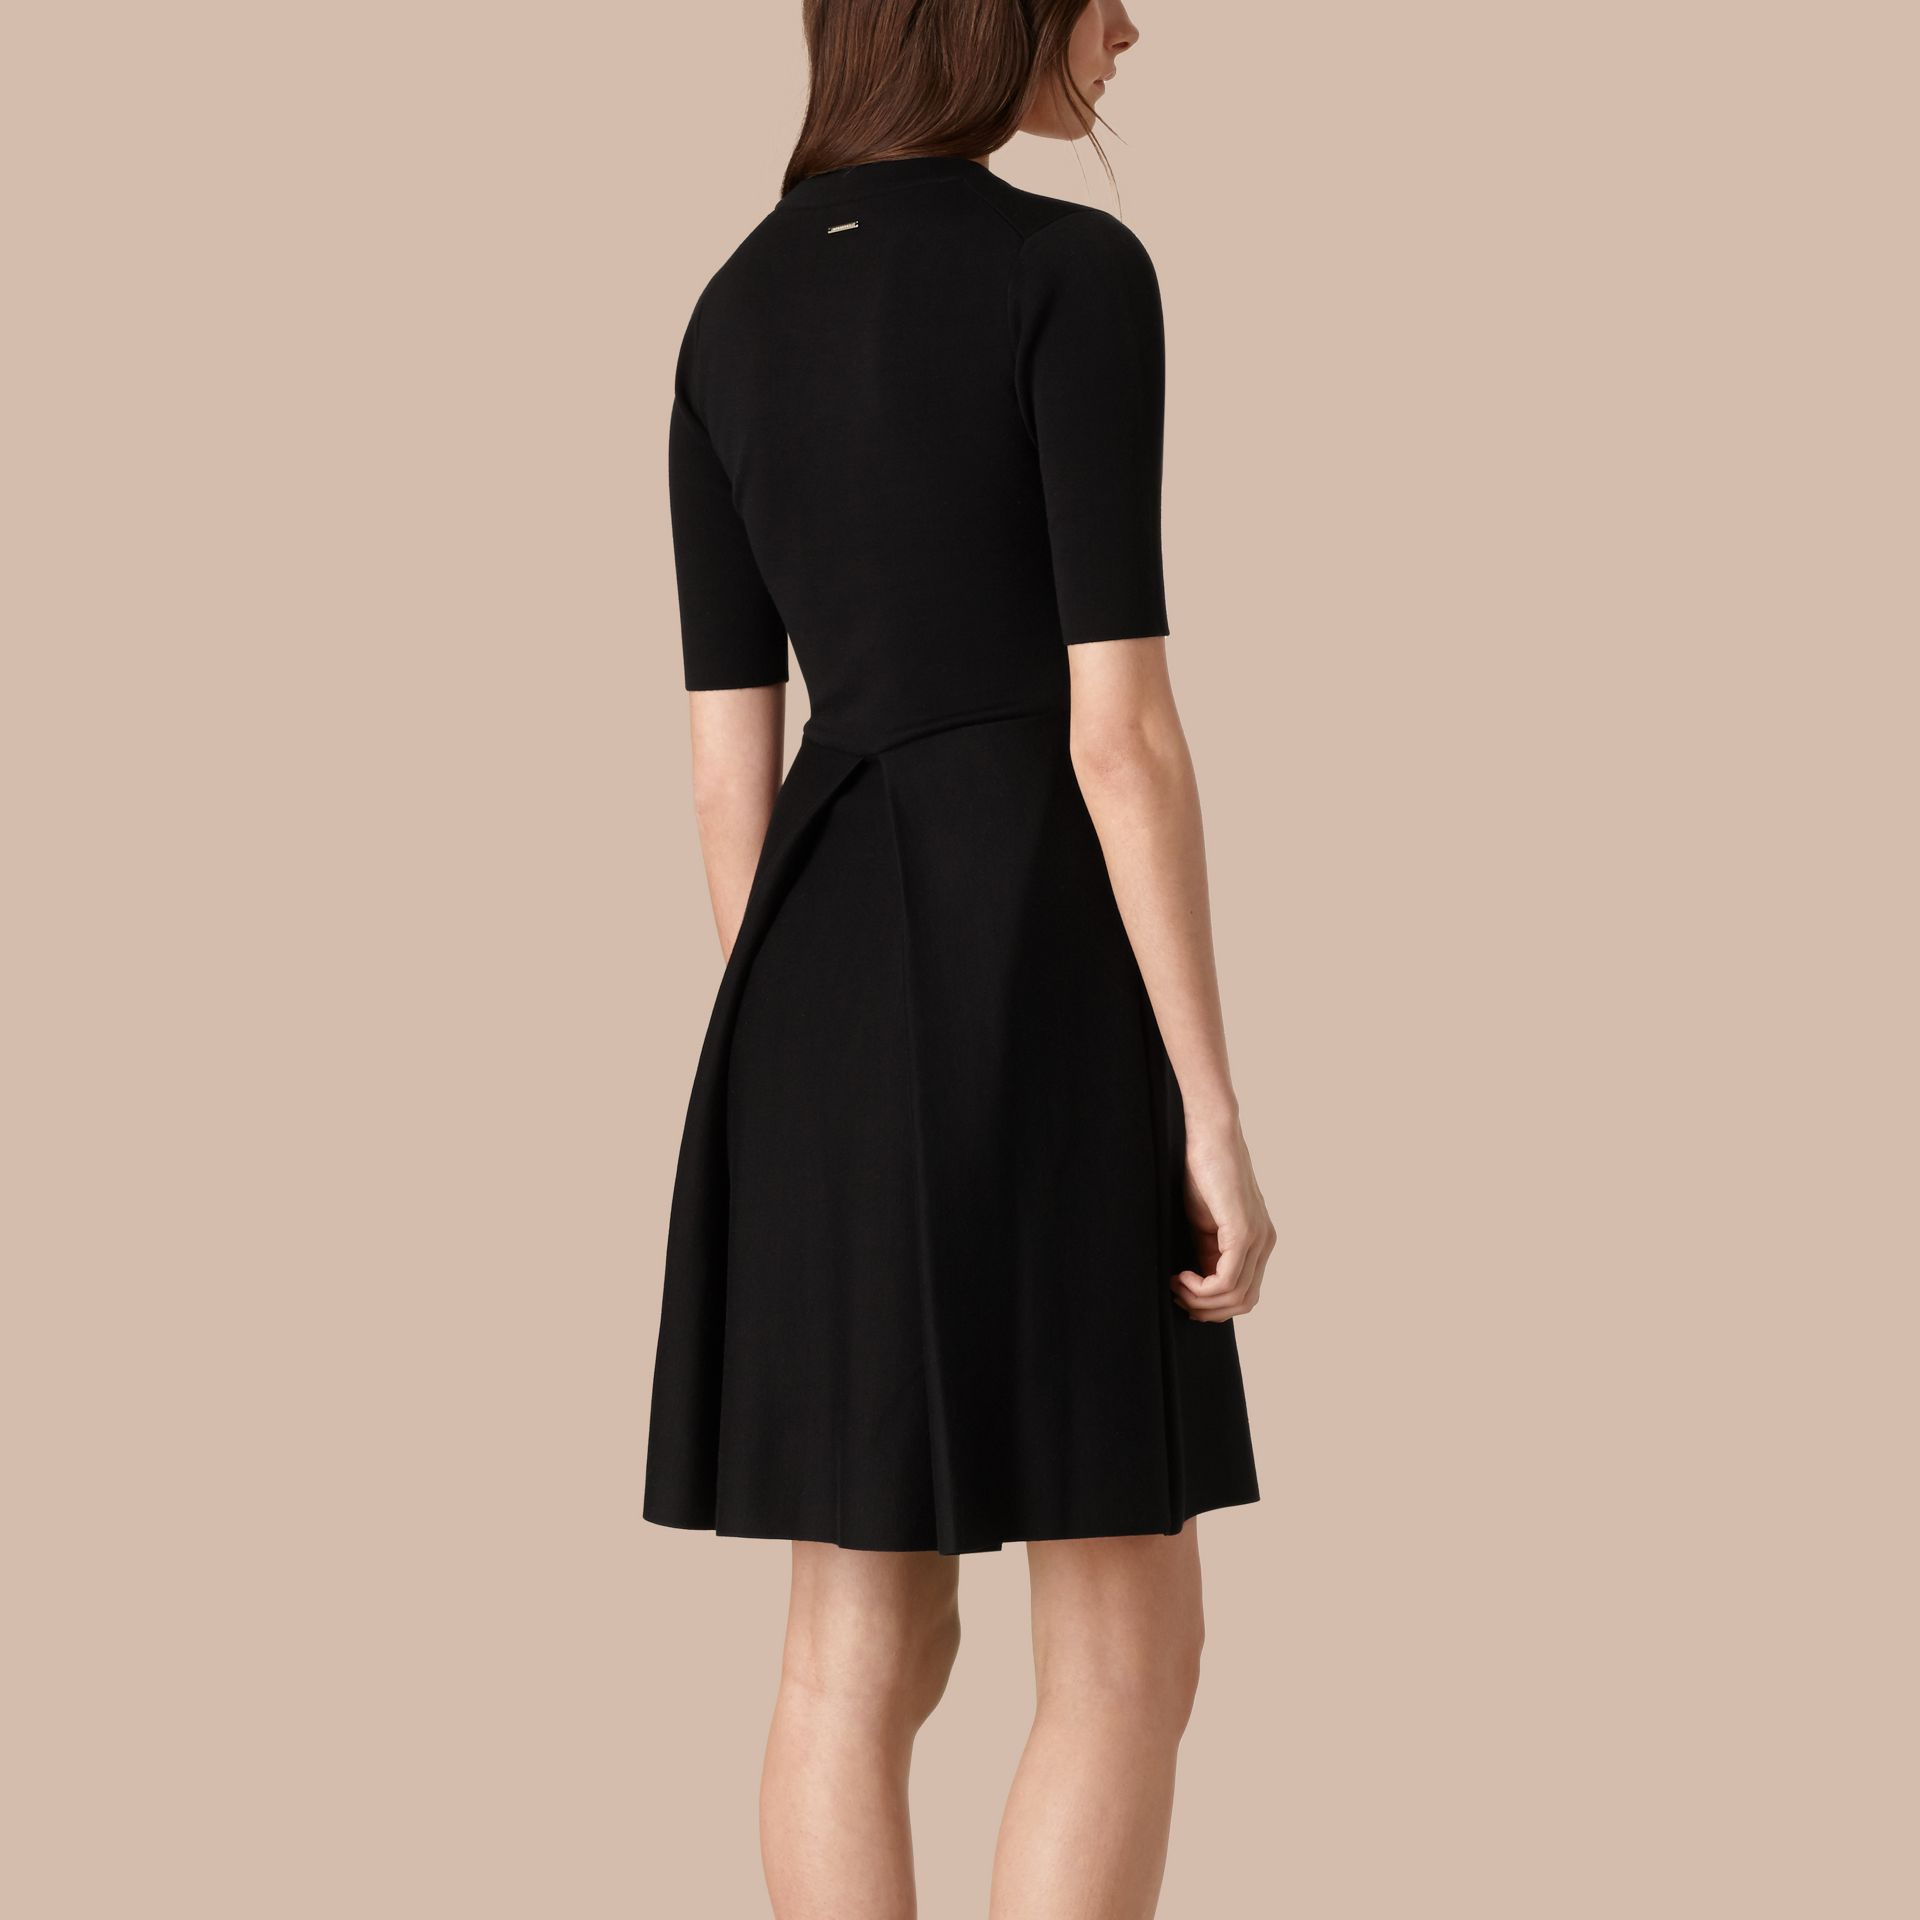 Black Knitted Silk Wool Dress Black - gallery image 3